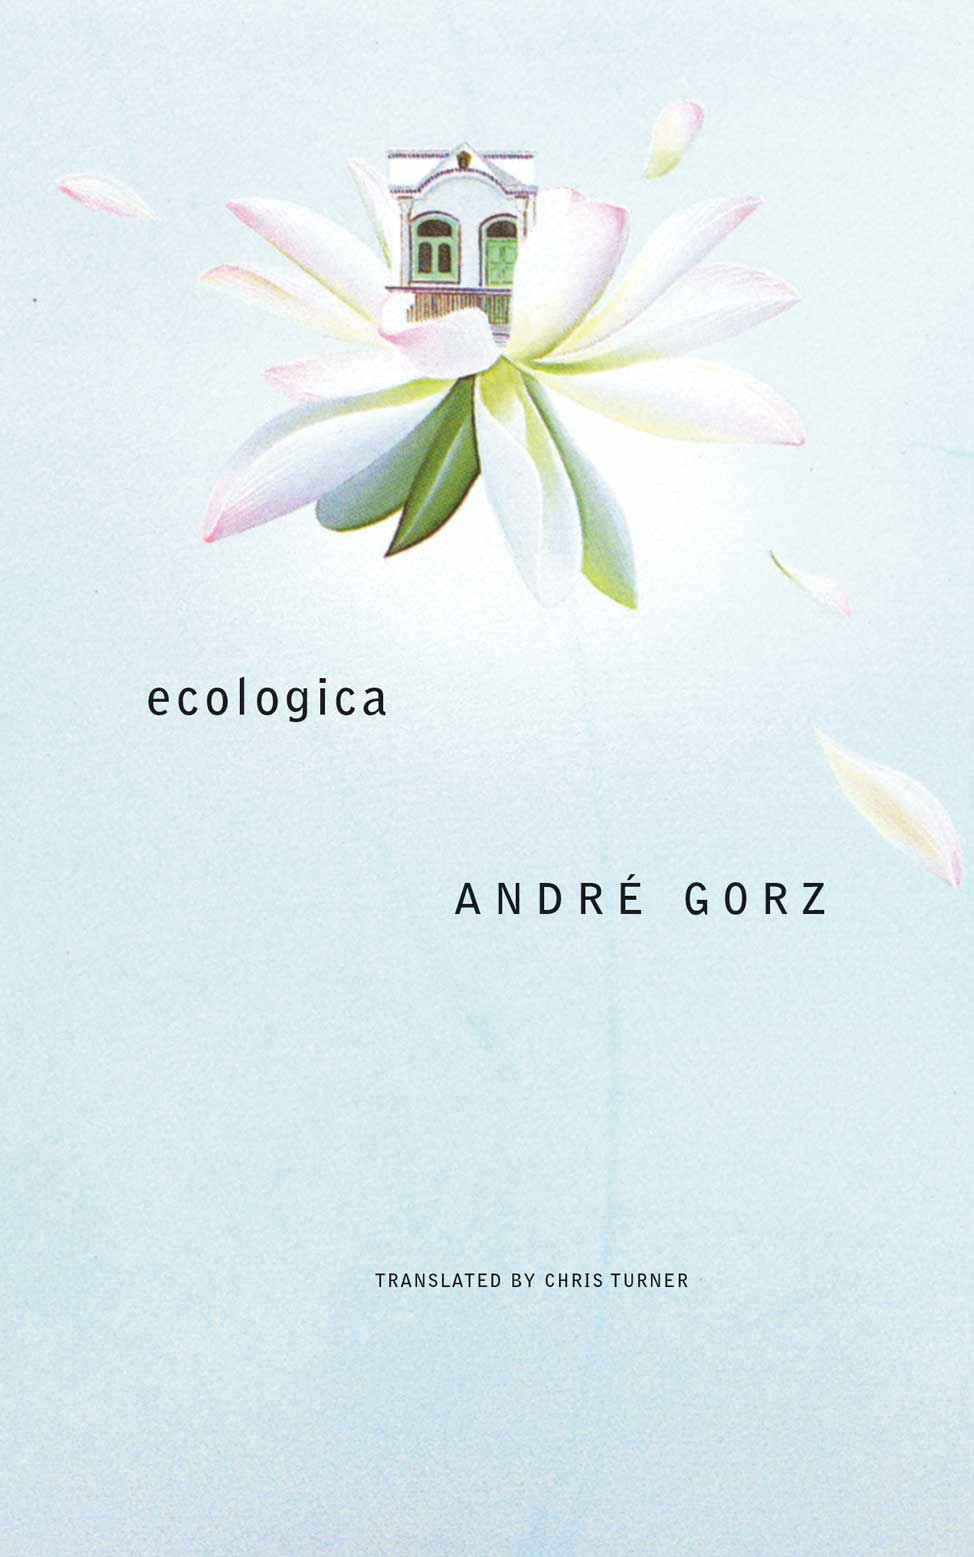 Ecologica by ANDRÉ GORZ |  Seagull Books